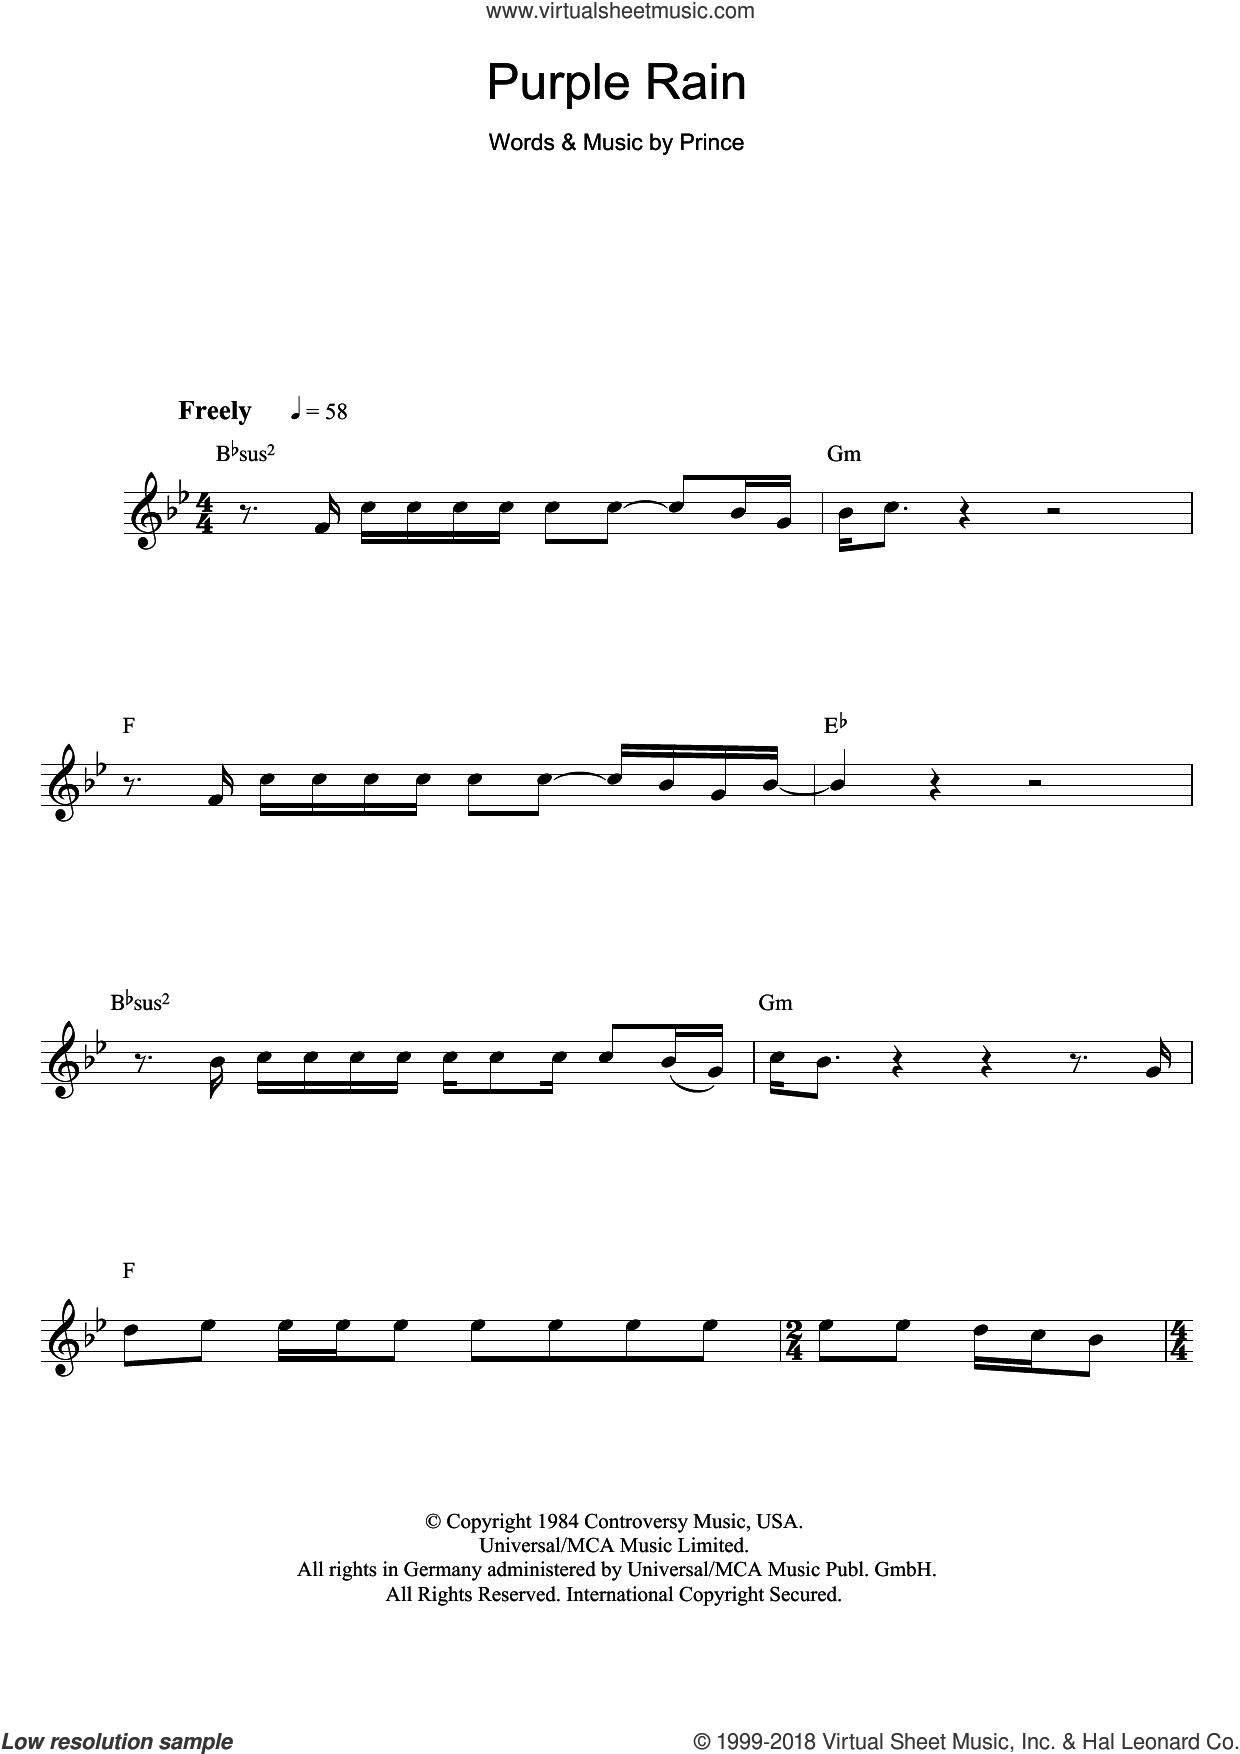 Purple Rain sheet music for flute solo by Prince, intermediate skill level